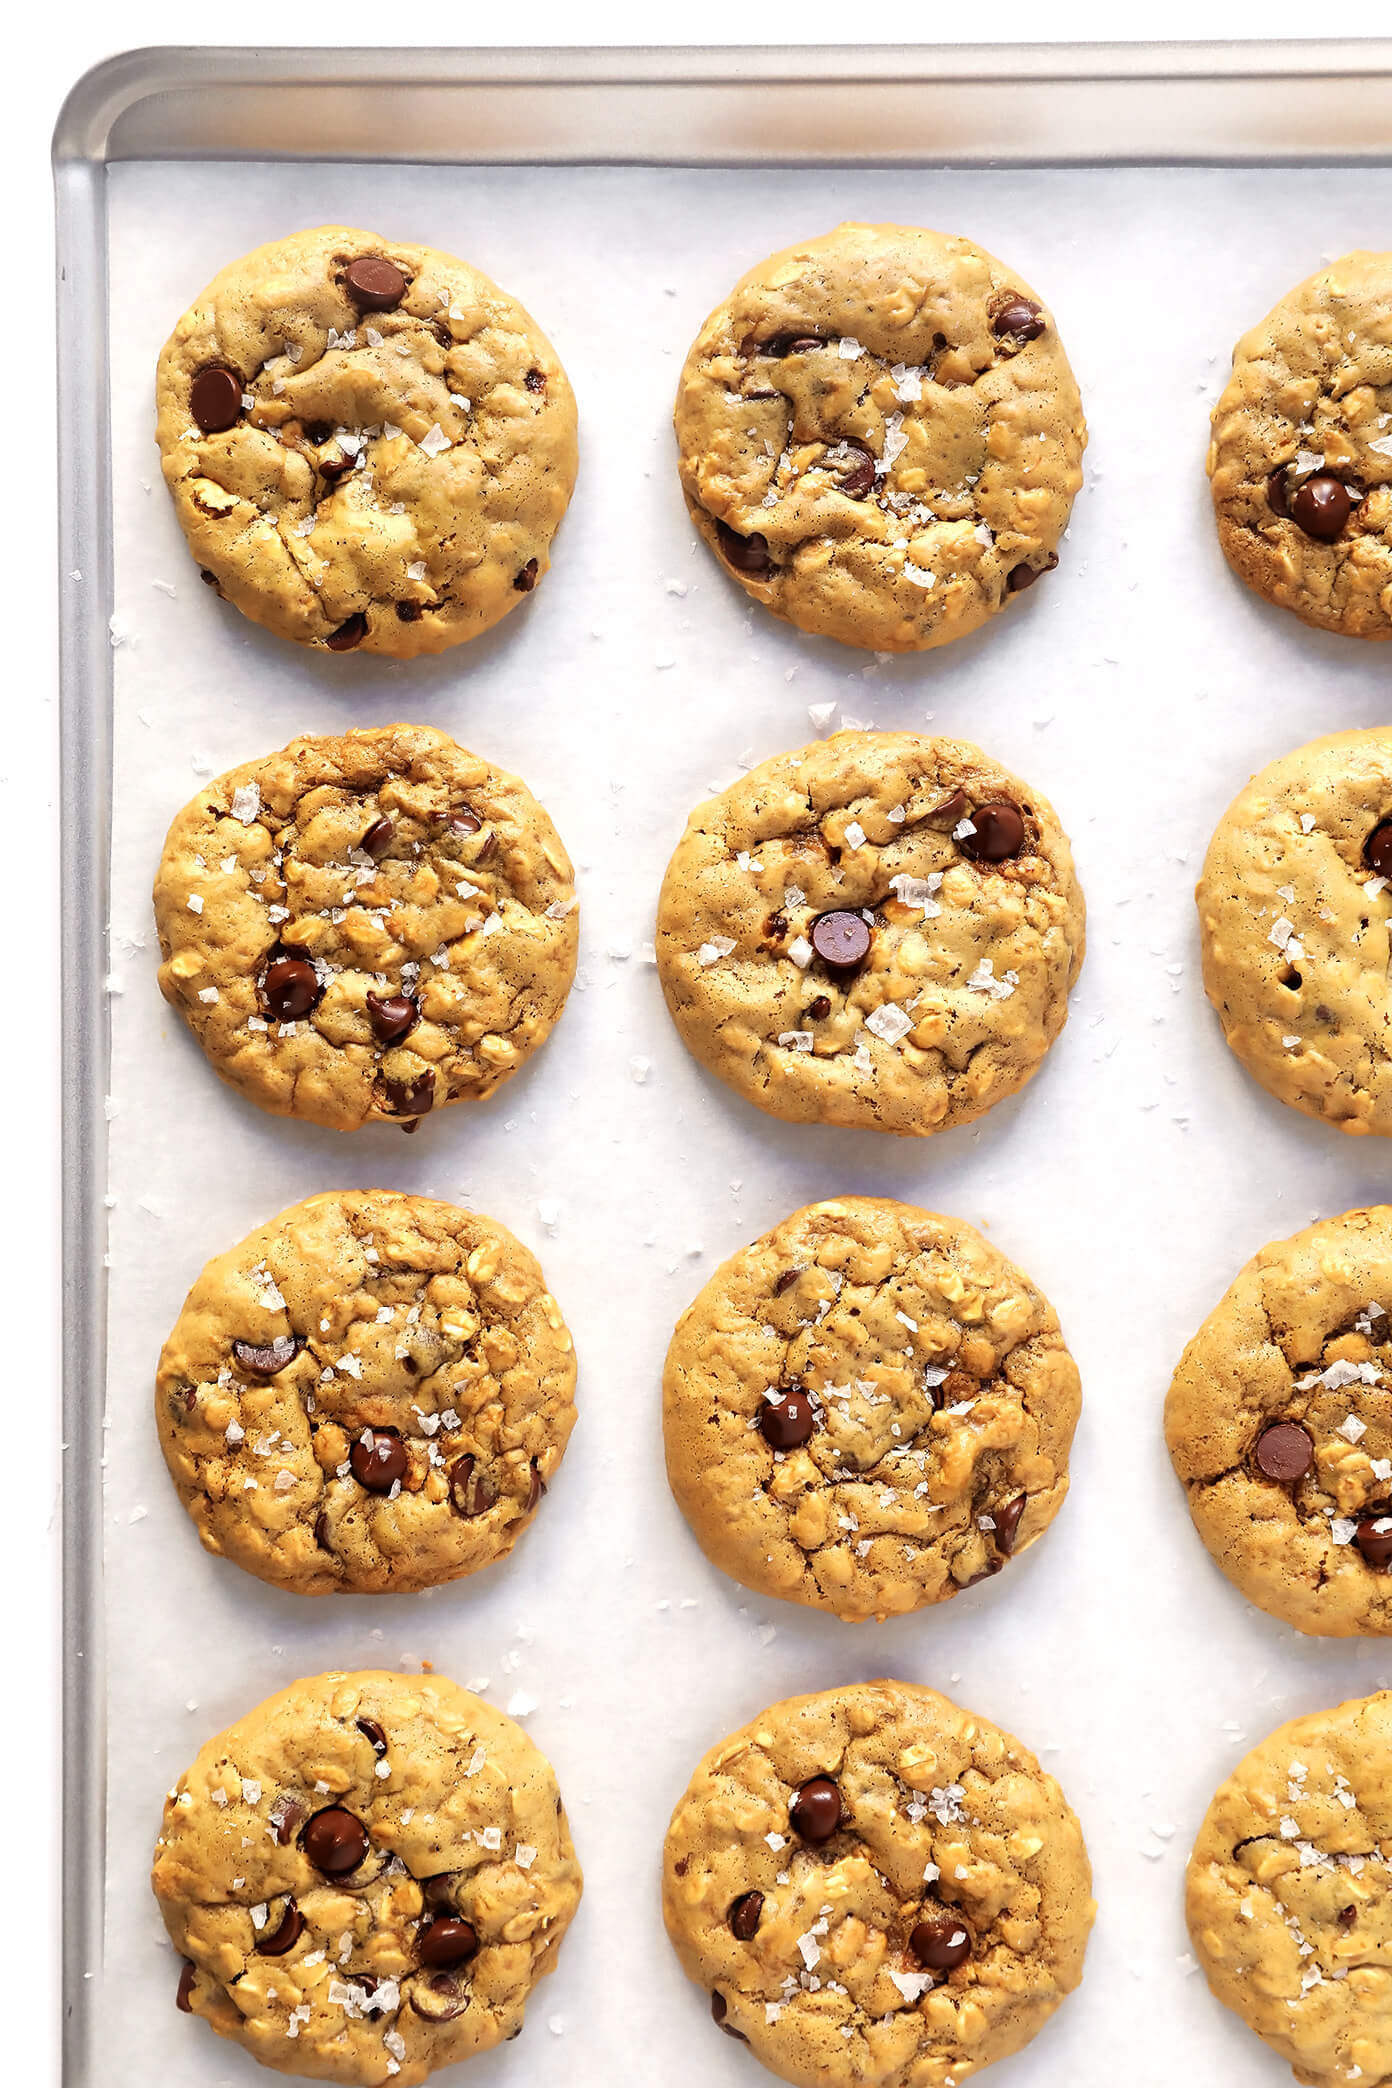 Peanut Butter Cookies Recipes  Healthy Peanut Butter Cookies